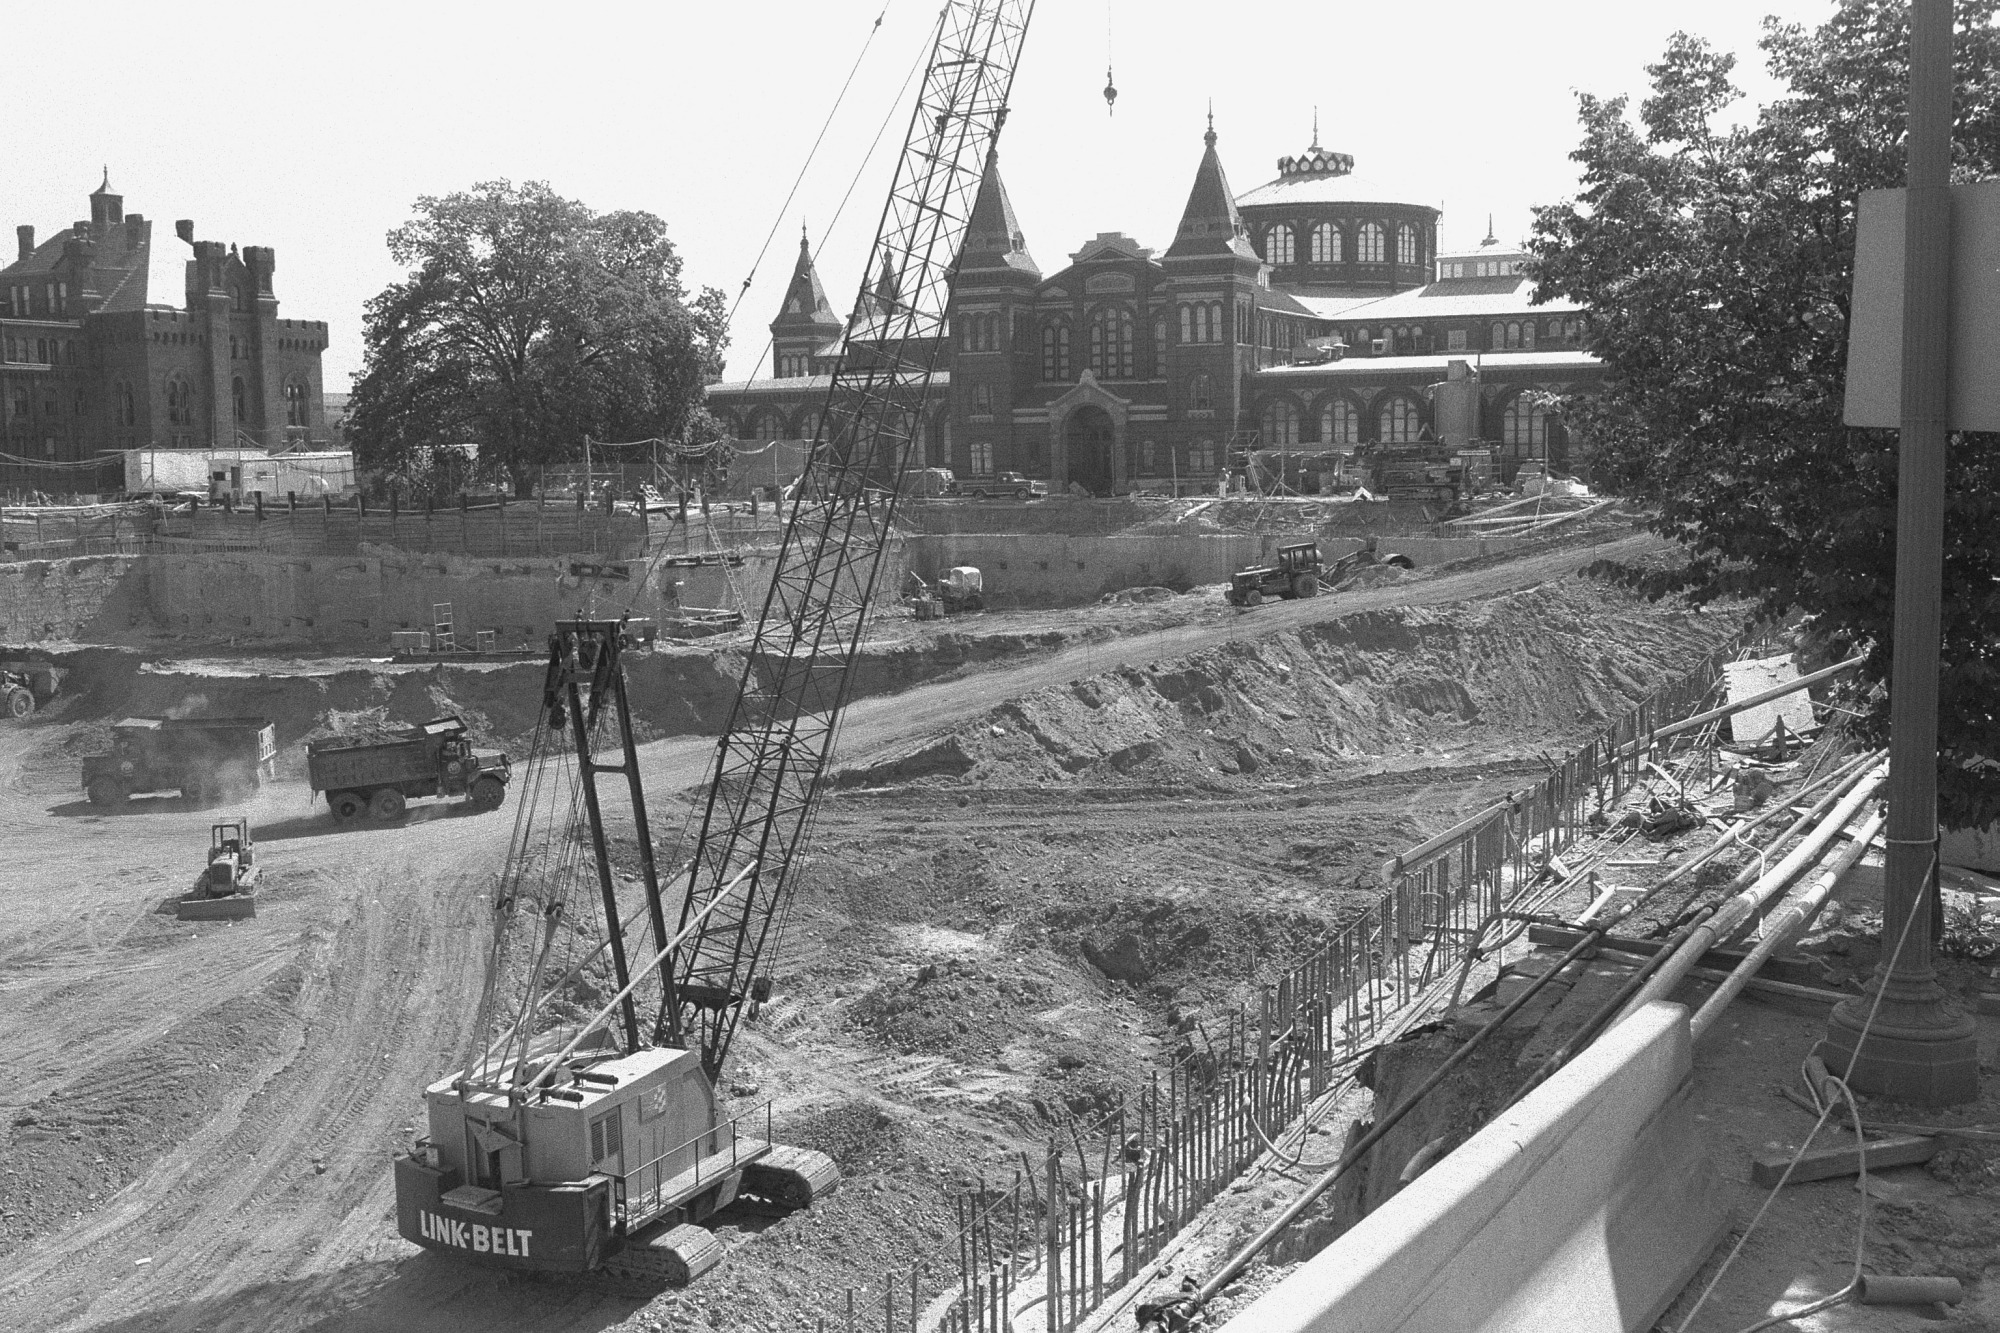 Excavation for Quad Construction